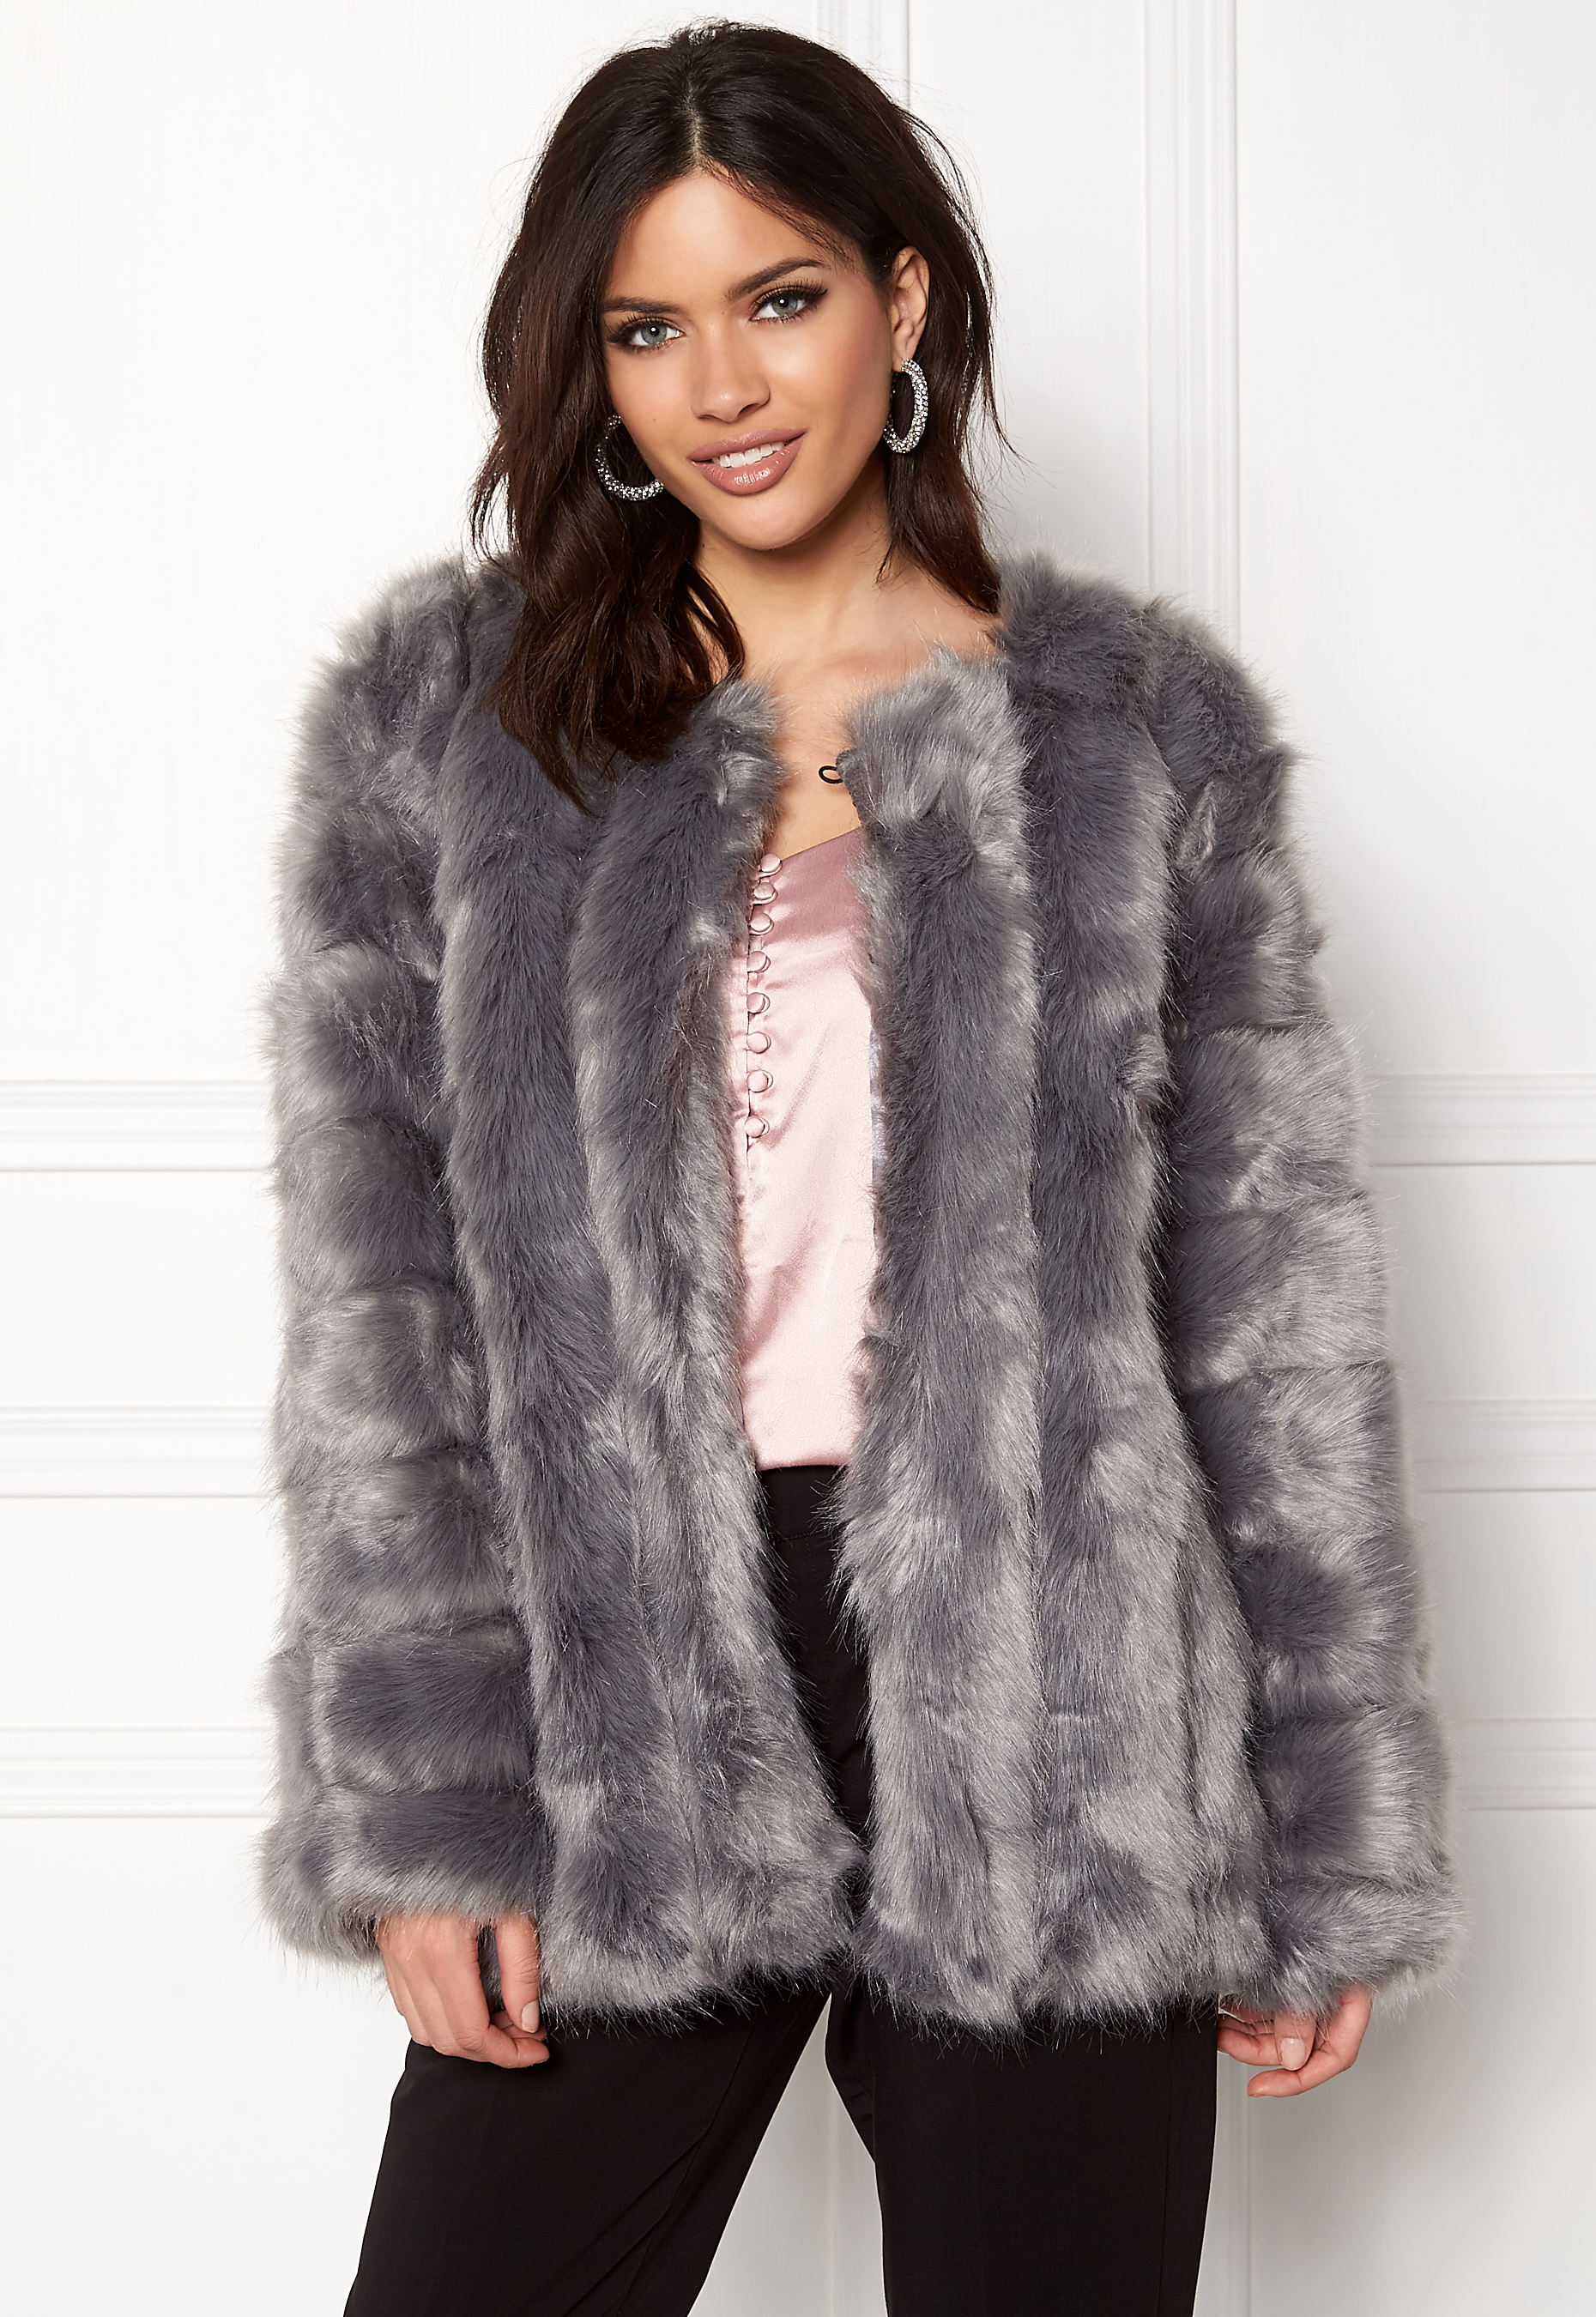 724a76b8c30a Urban Mist Plush Faux Fur Coat Grey Bubbleroom.eu